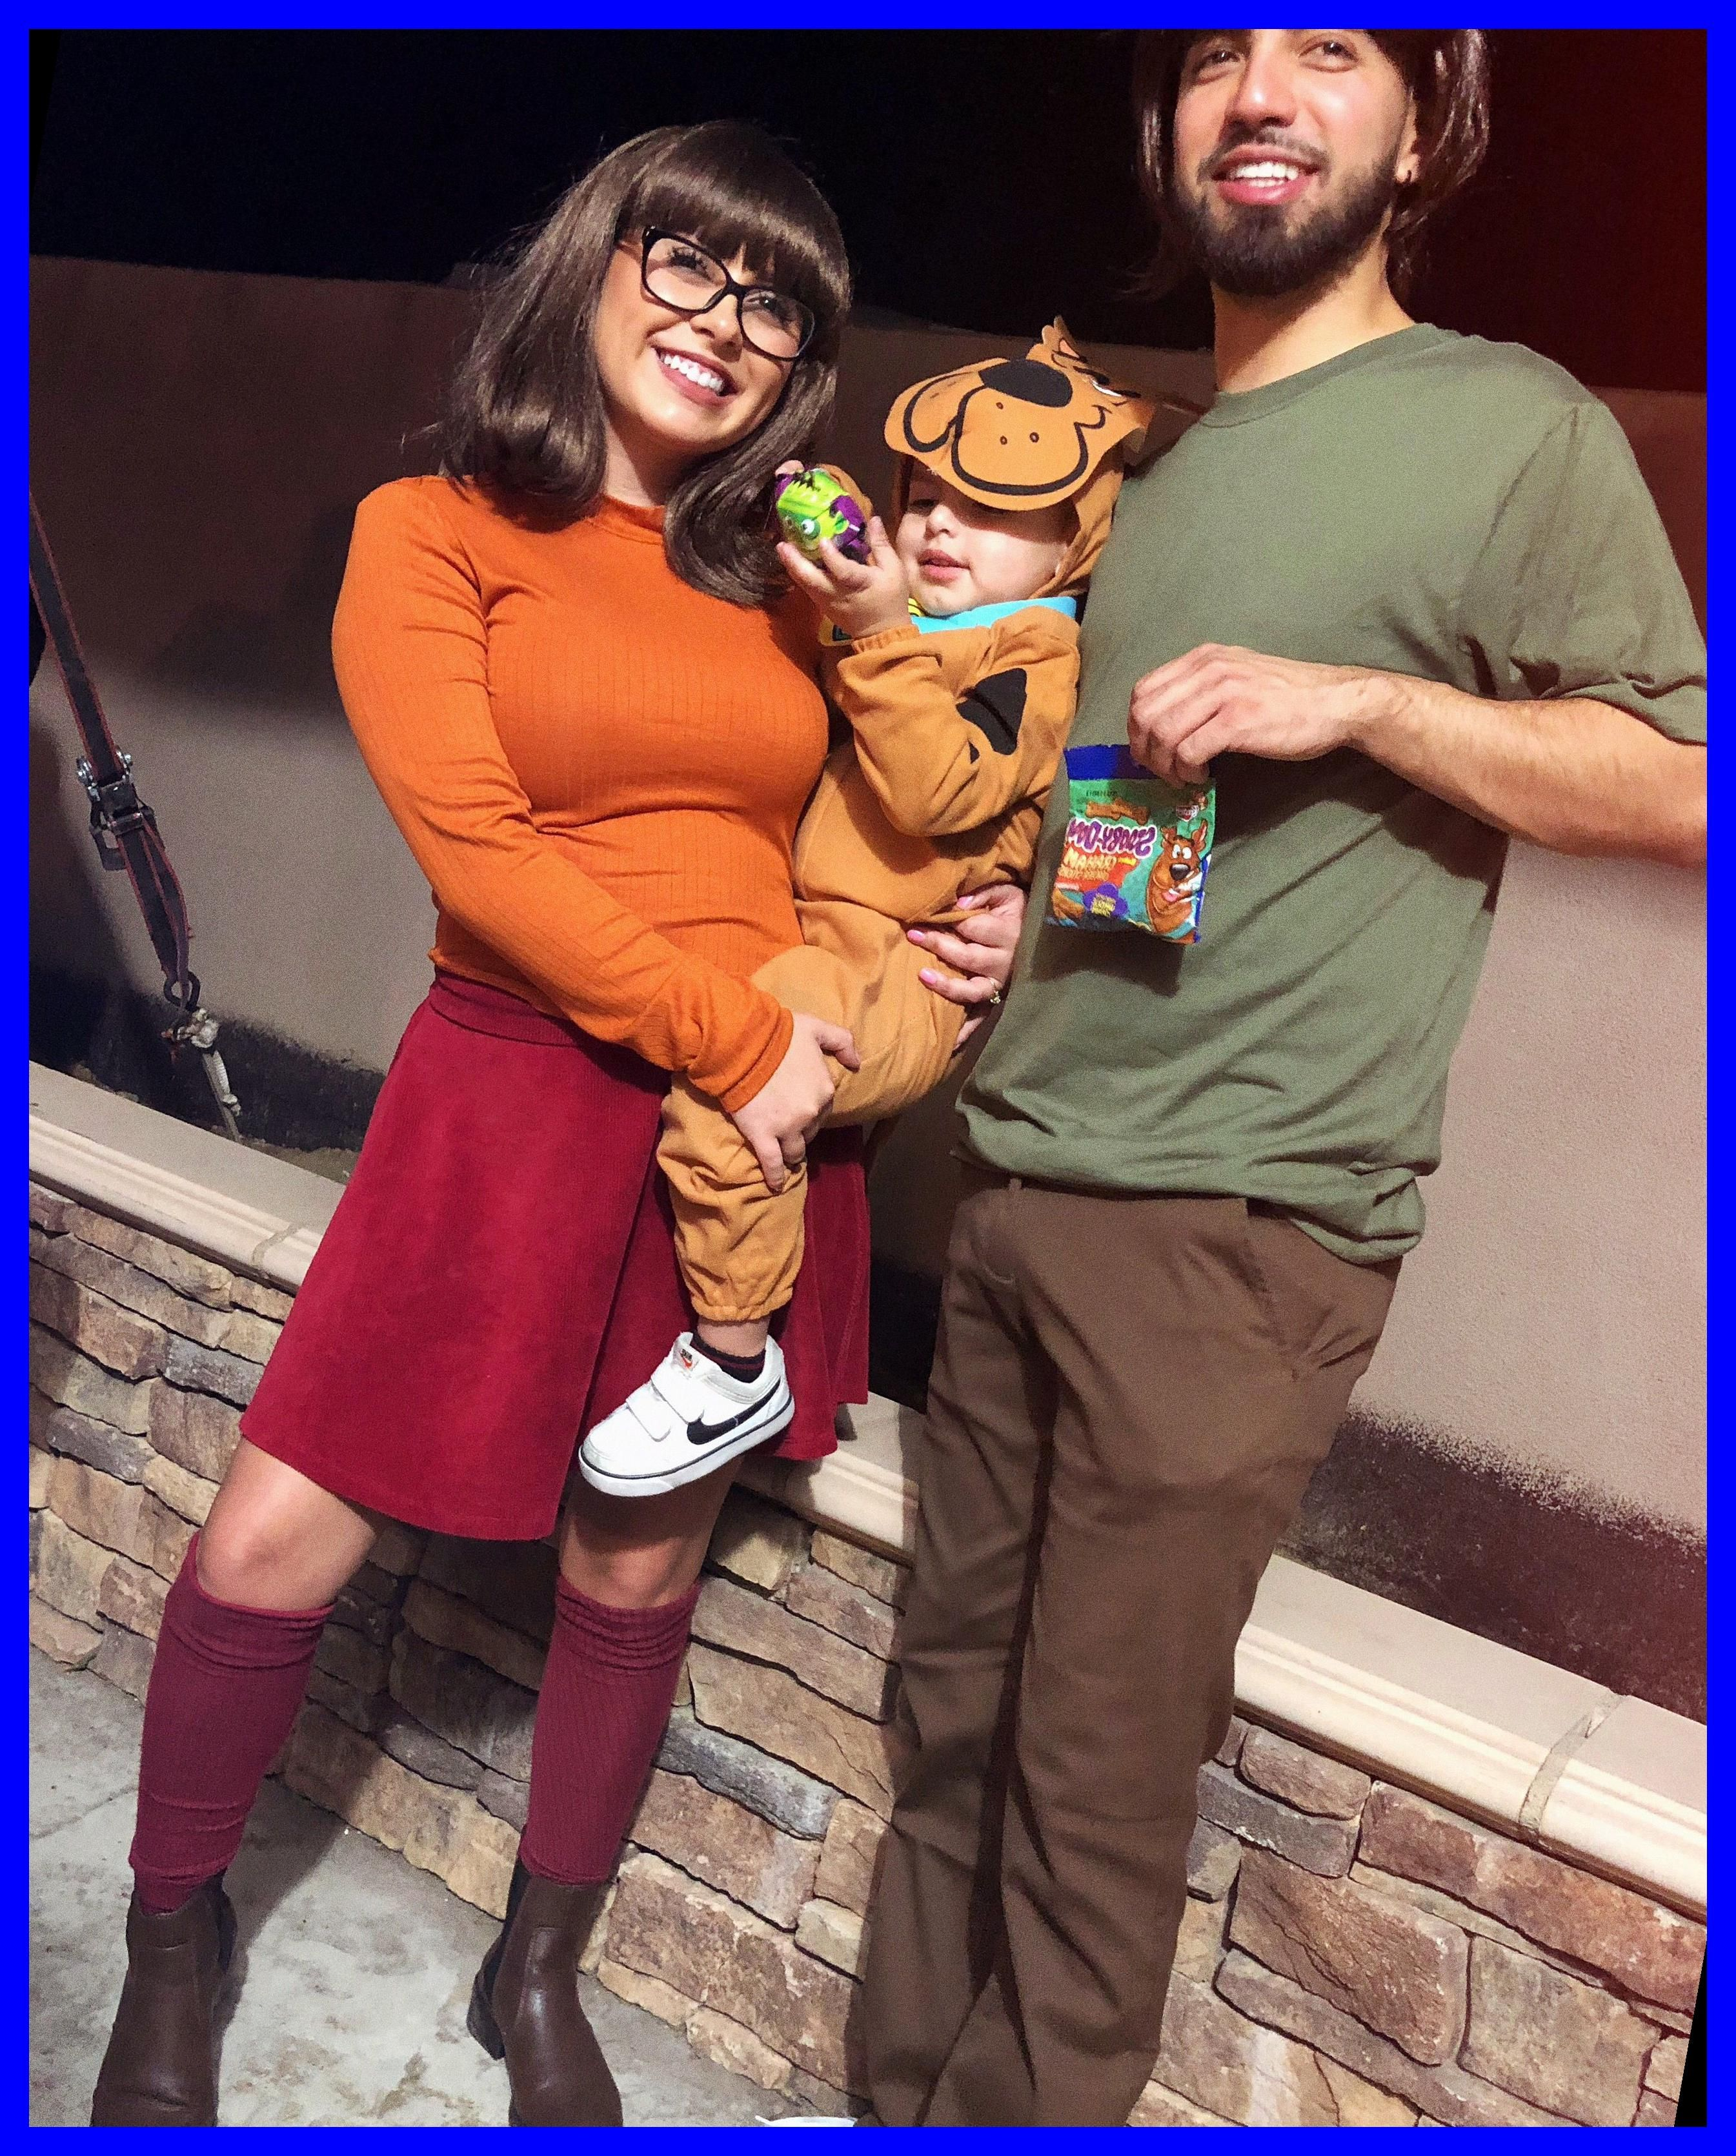 Shaggy Velma And Scooby Doo 36 Halloween Family Costumes Pregnant 2020 Cute Baby Halloween Costumes Toddler Halloween Costumes Diy Halloween Costumes Easy